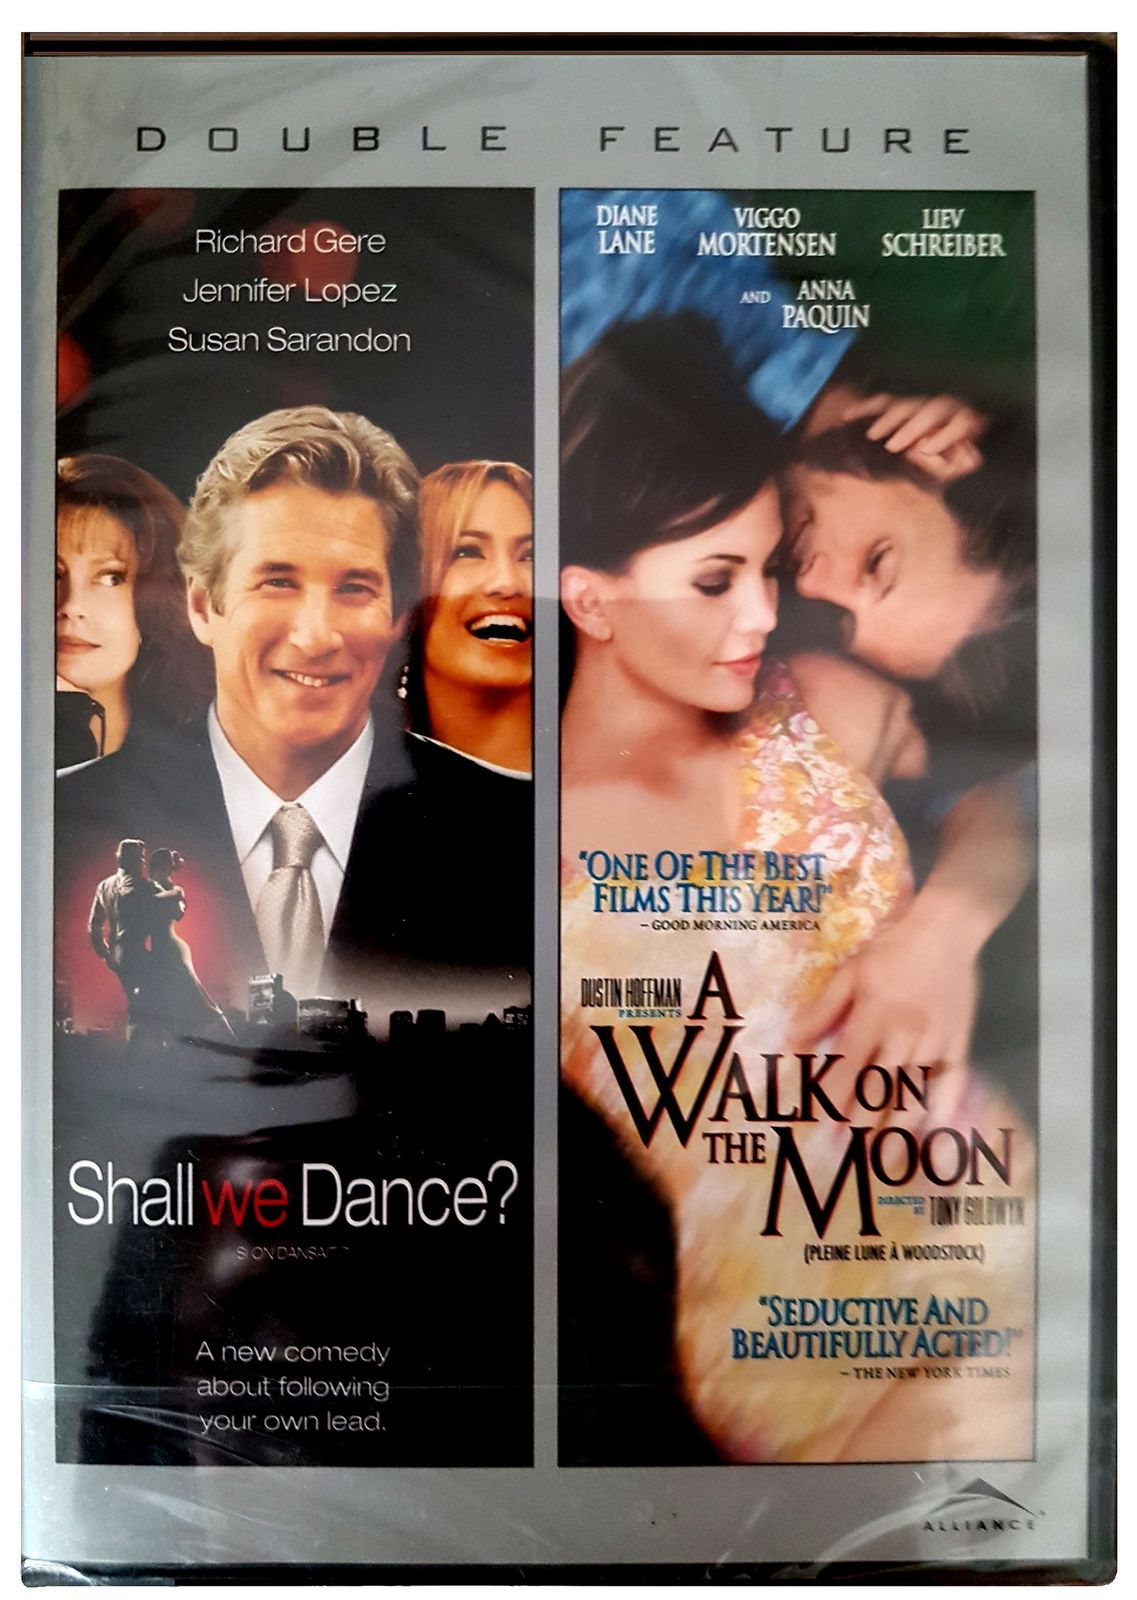 Shall we double feature dvd main